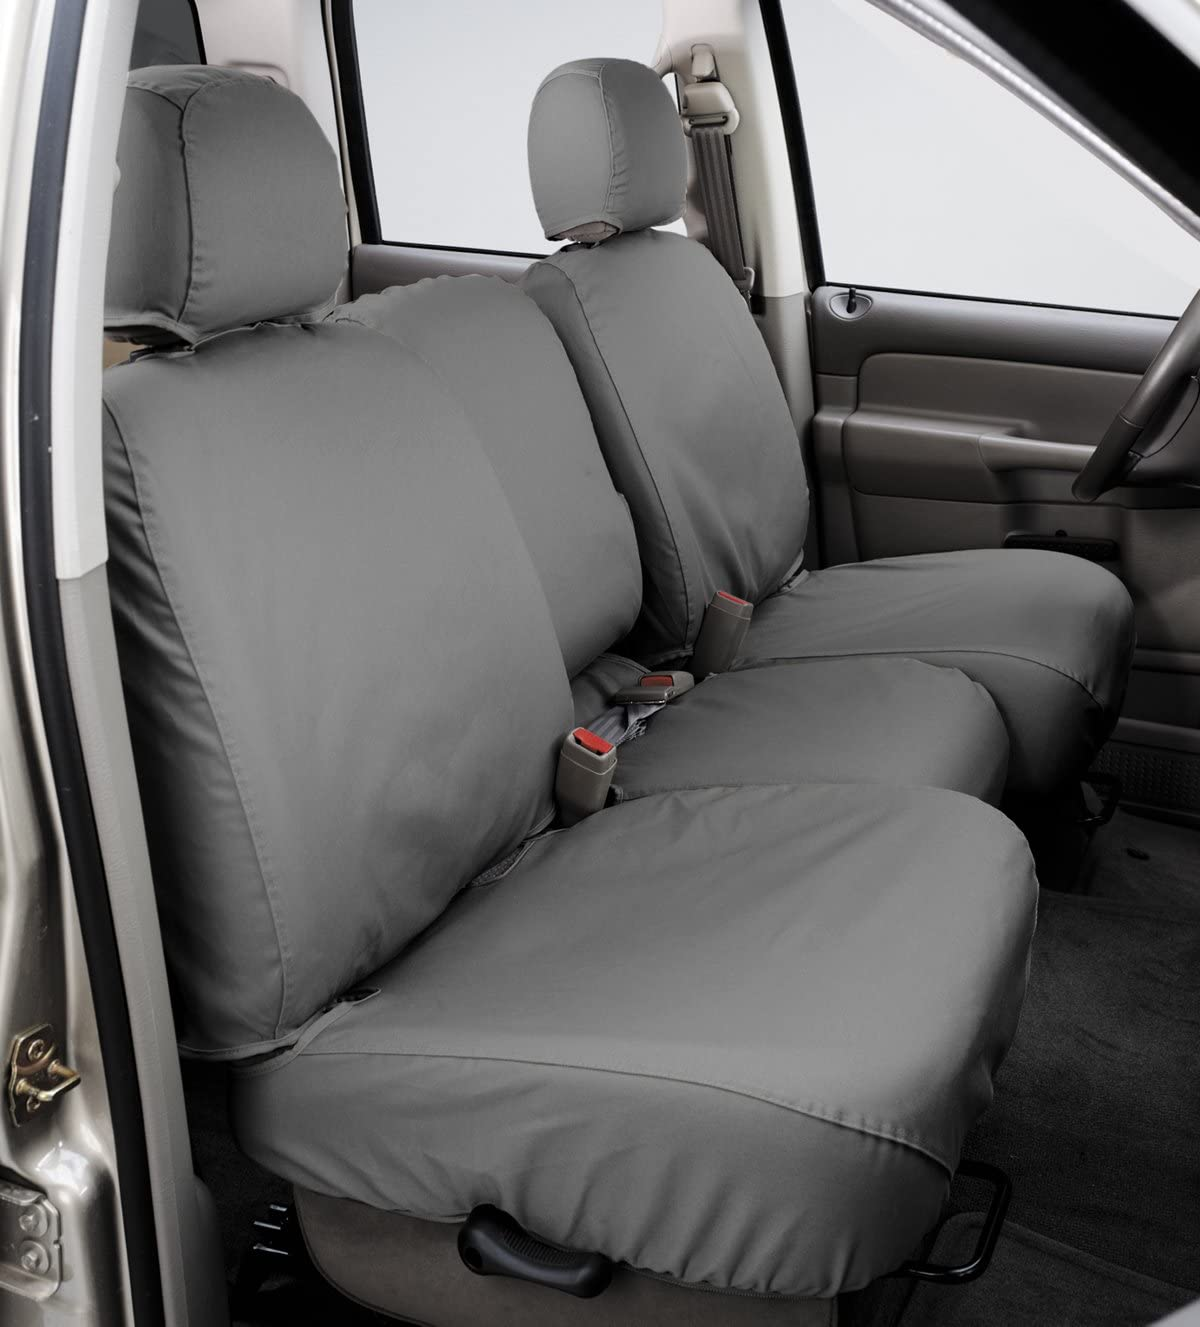 Covercraft SeatSaver Front Row Custom Fit Seat Cover for Select Dodge Ram Pickup Models - Polycotton (Grey)